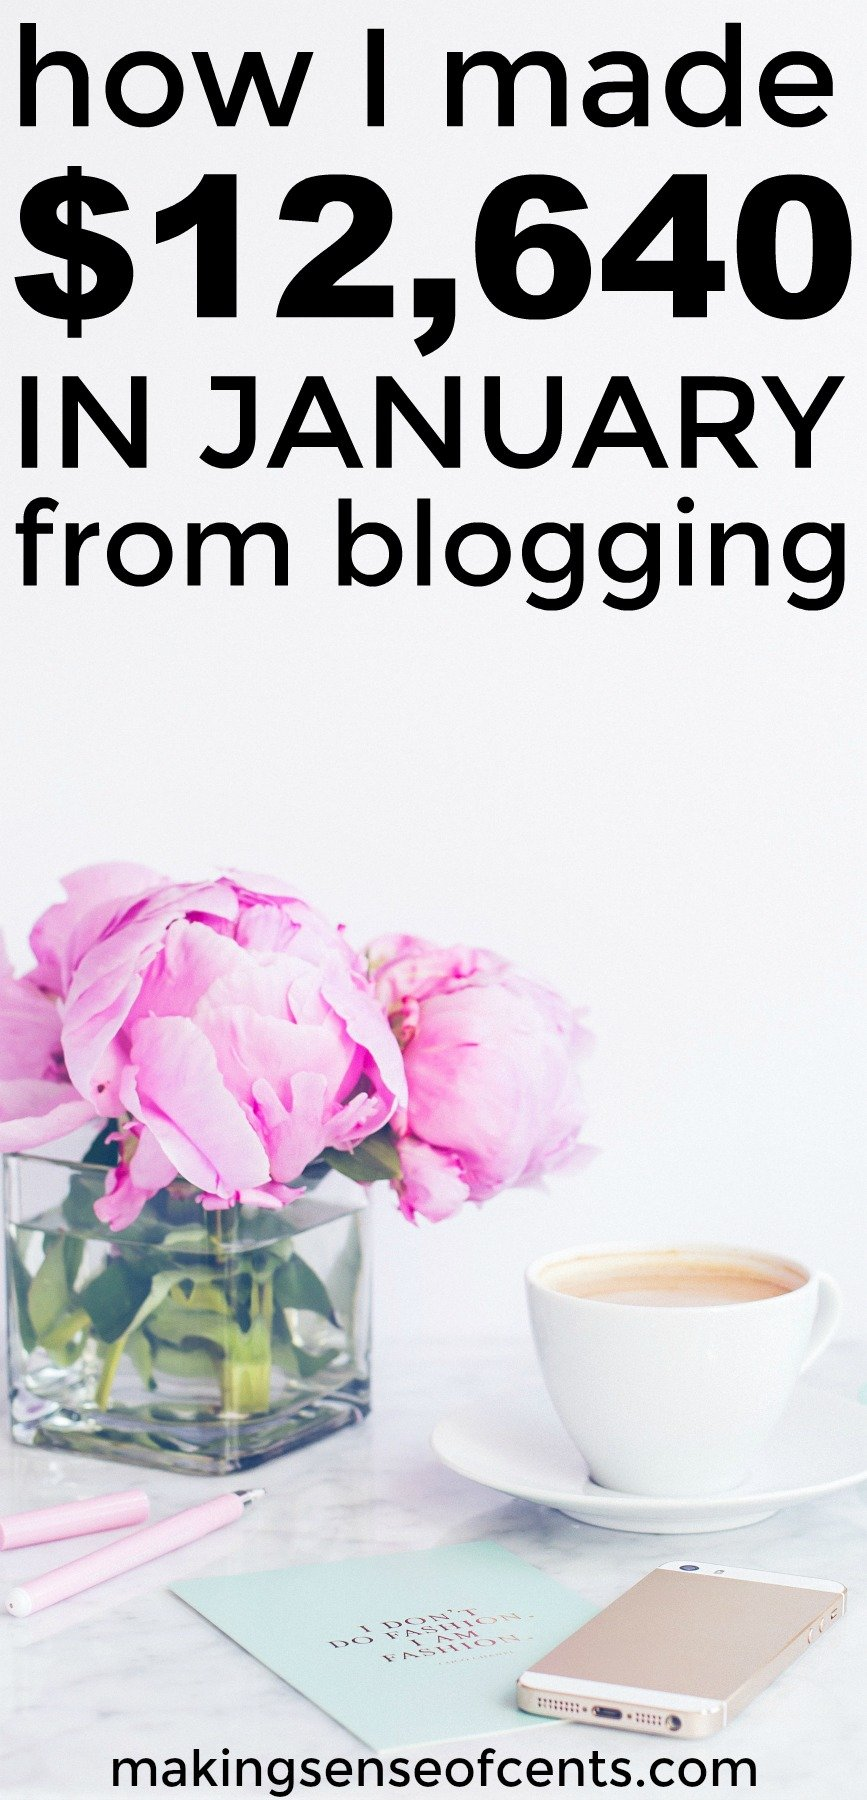 Find out how I made $12,640 in January from blogging.